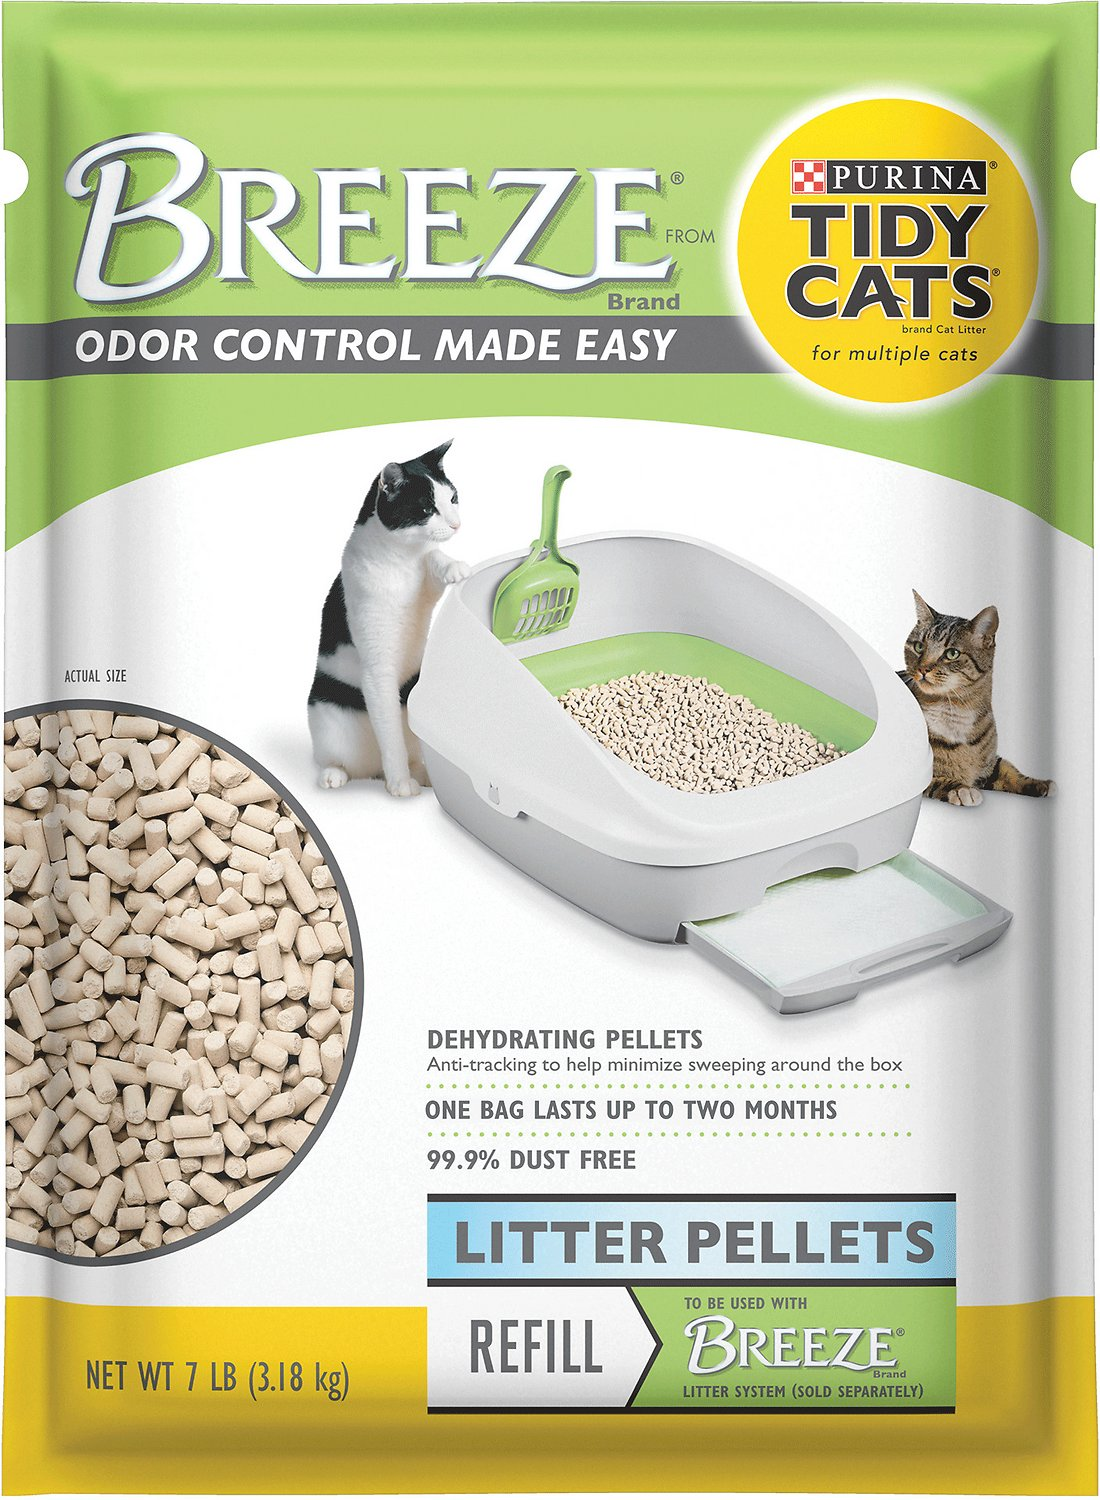 Tidy Cats Breeze Cat Litter Pellets Image